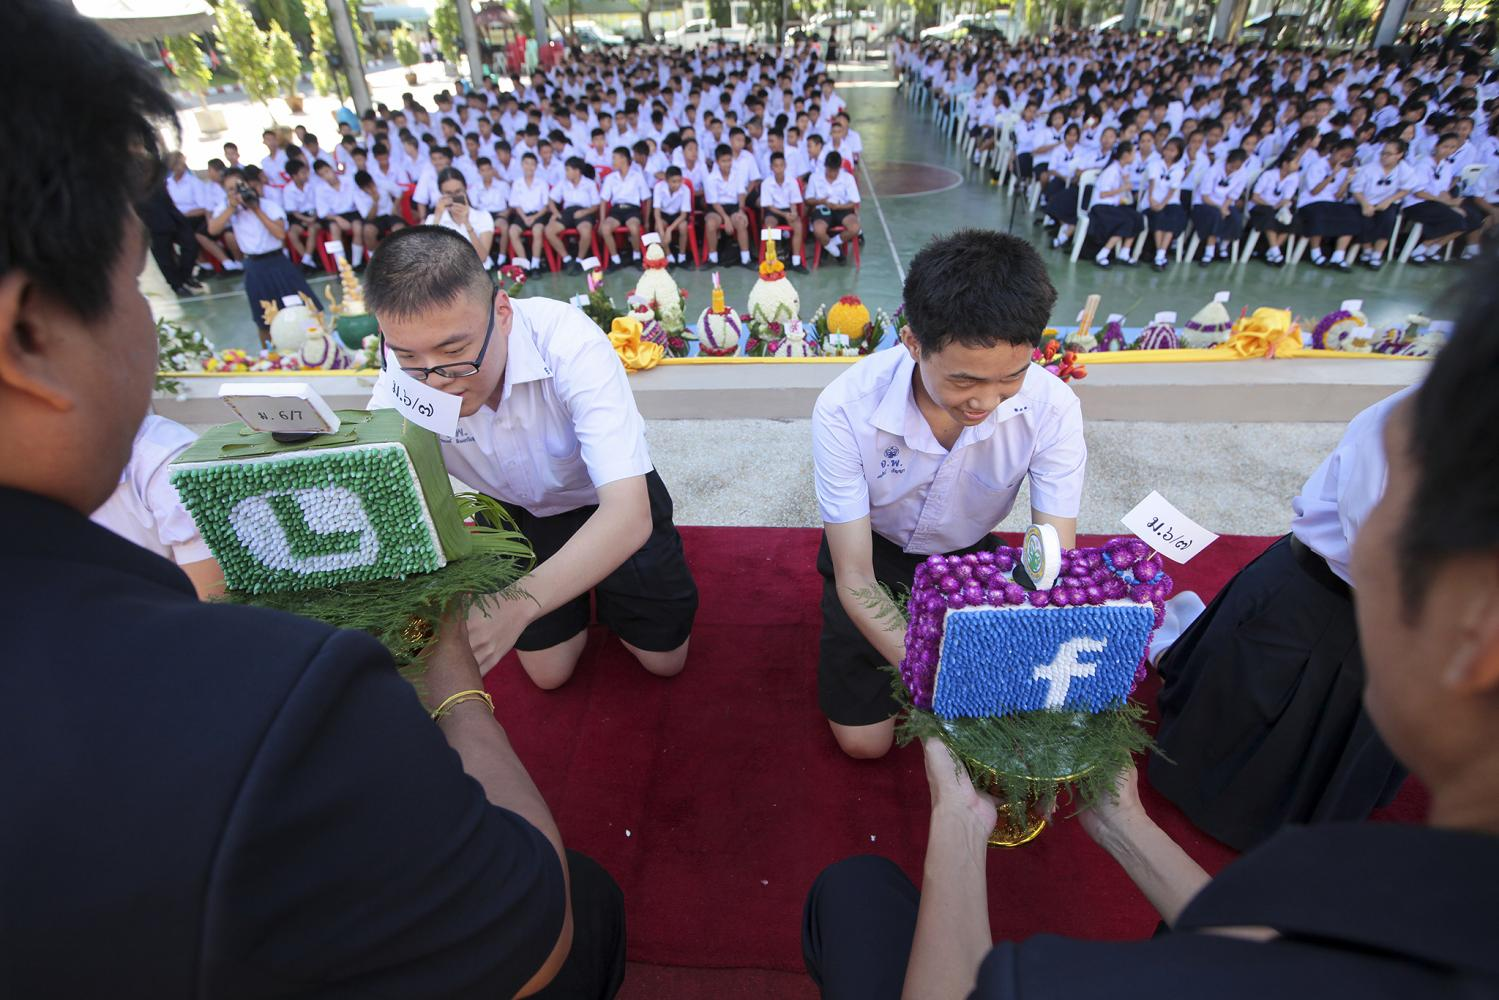 Students at a Bangkok school kneel down and present trays of flowers to their teachers during a 'wai khru' ceremony in June. (Photo by Patipat Janthong)